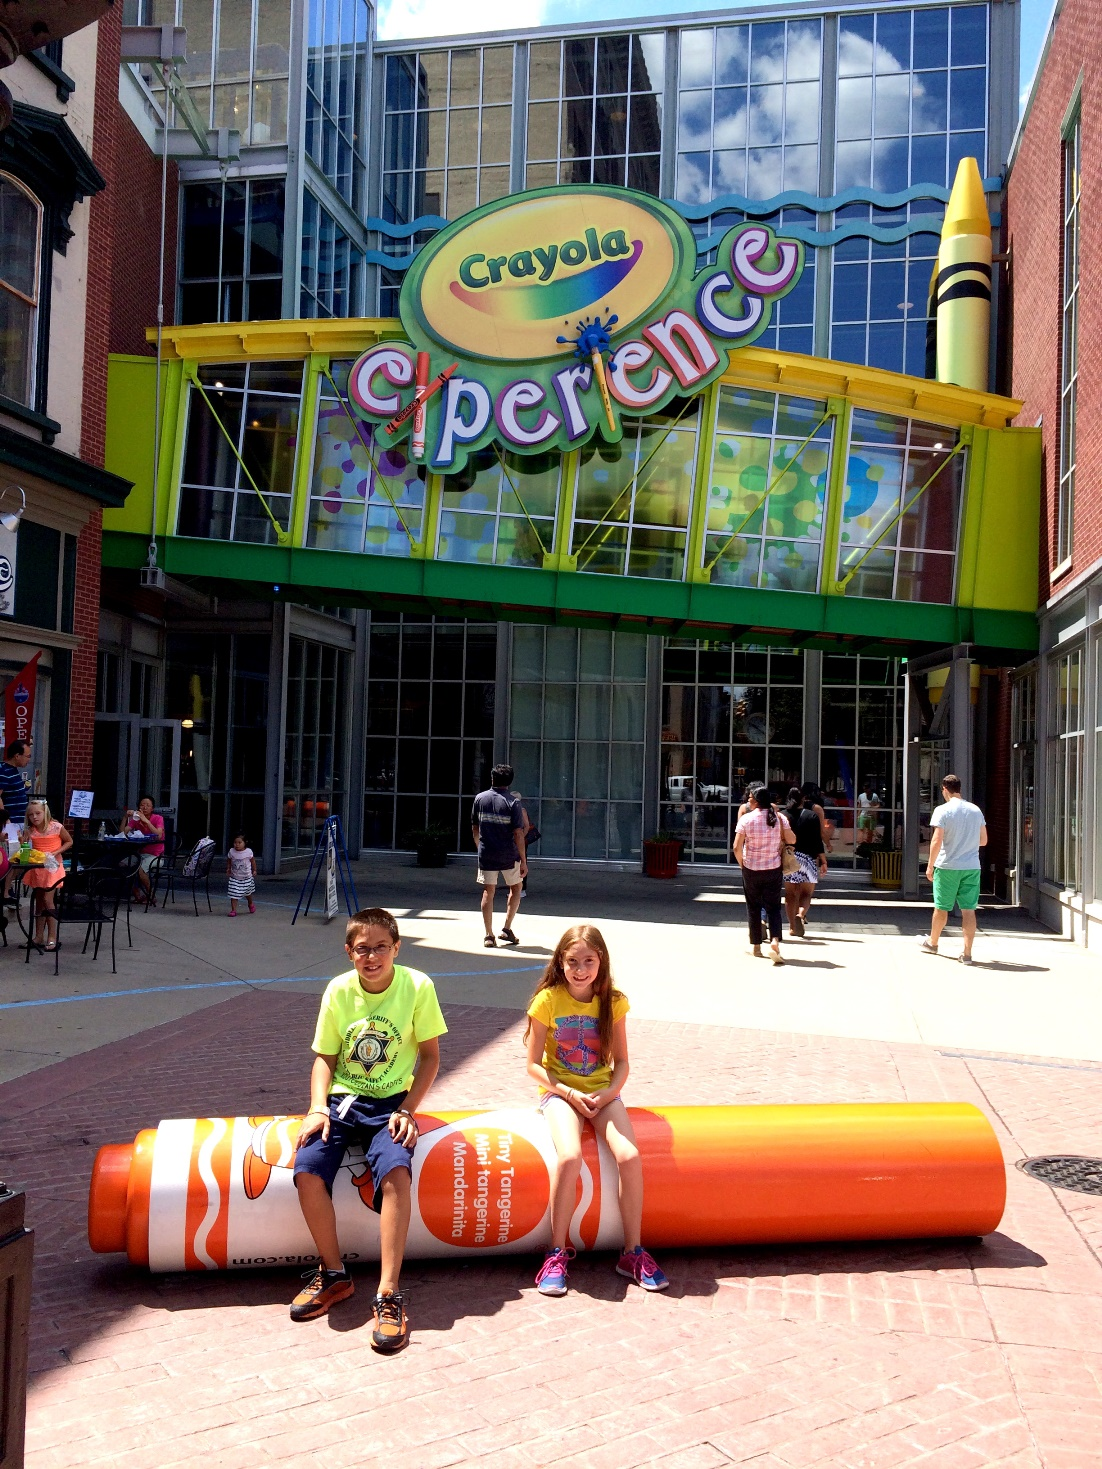 evan and lauren s cool blog 8 7 15 the crayola experience in easton pa